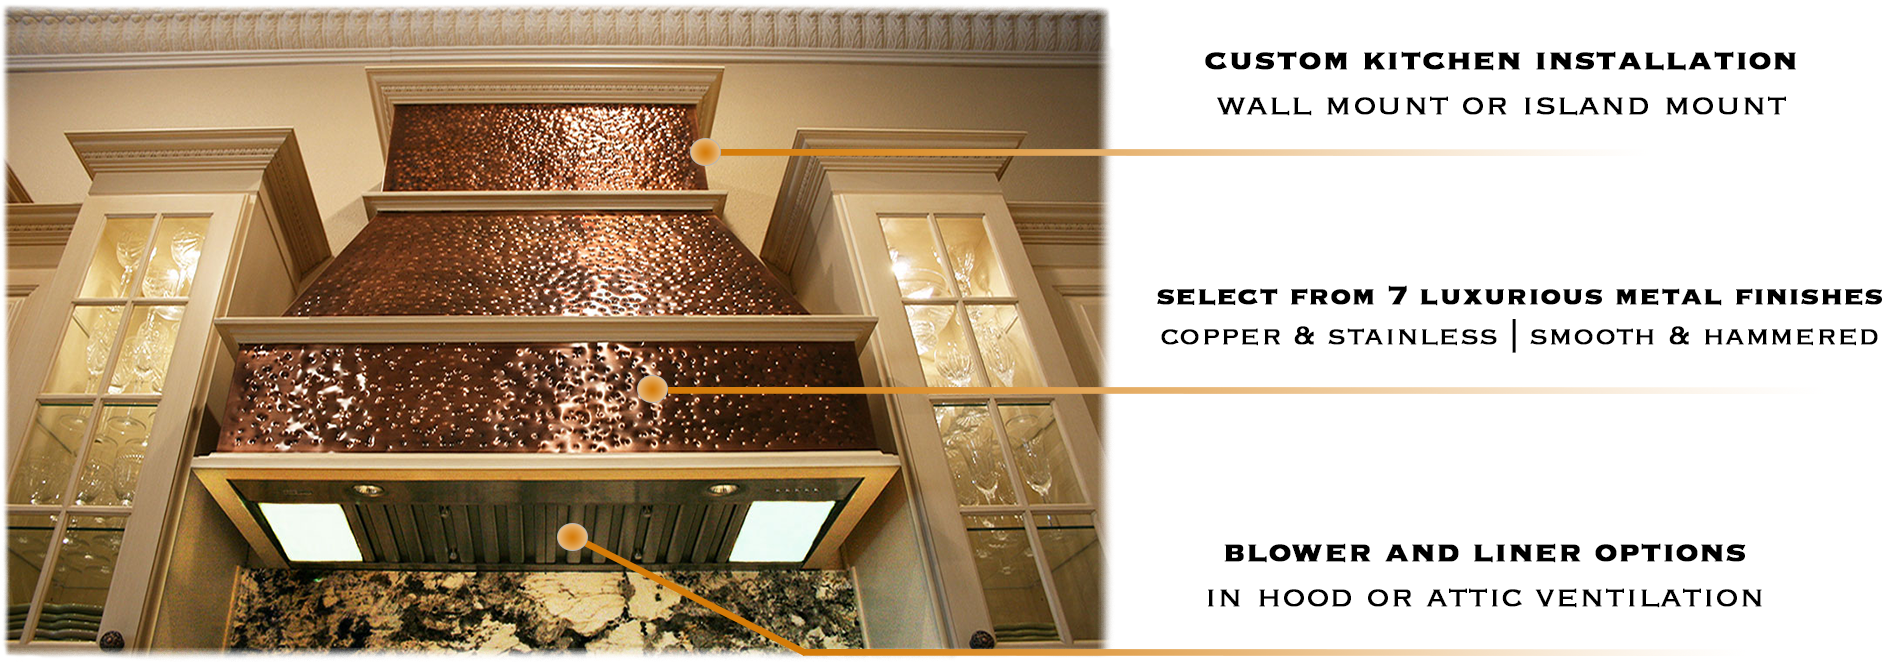 Orlando kitchen hood - Copper and Stainless Steel